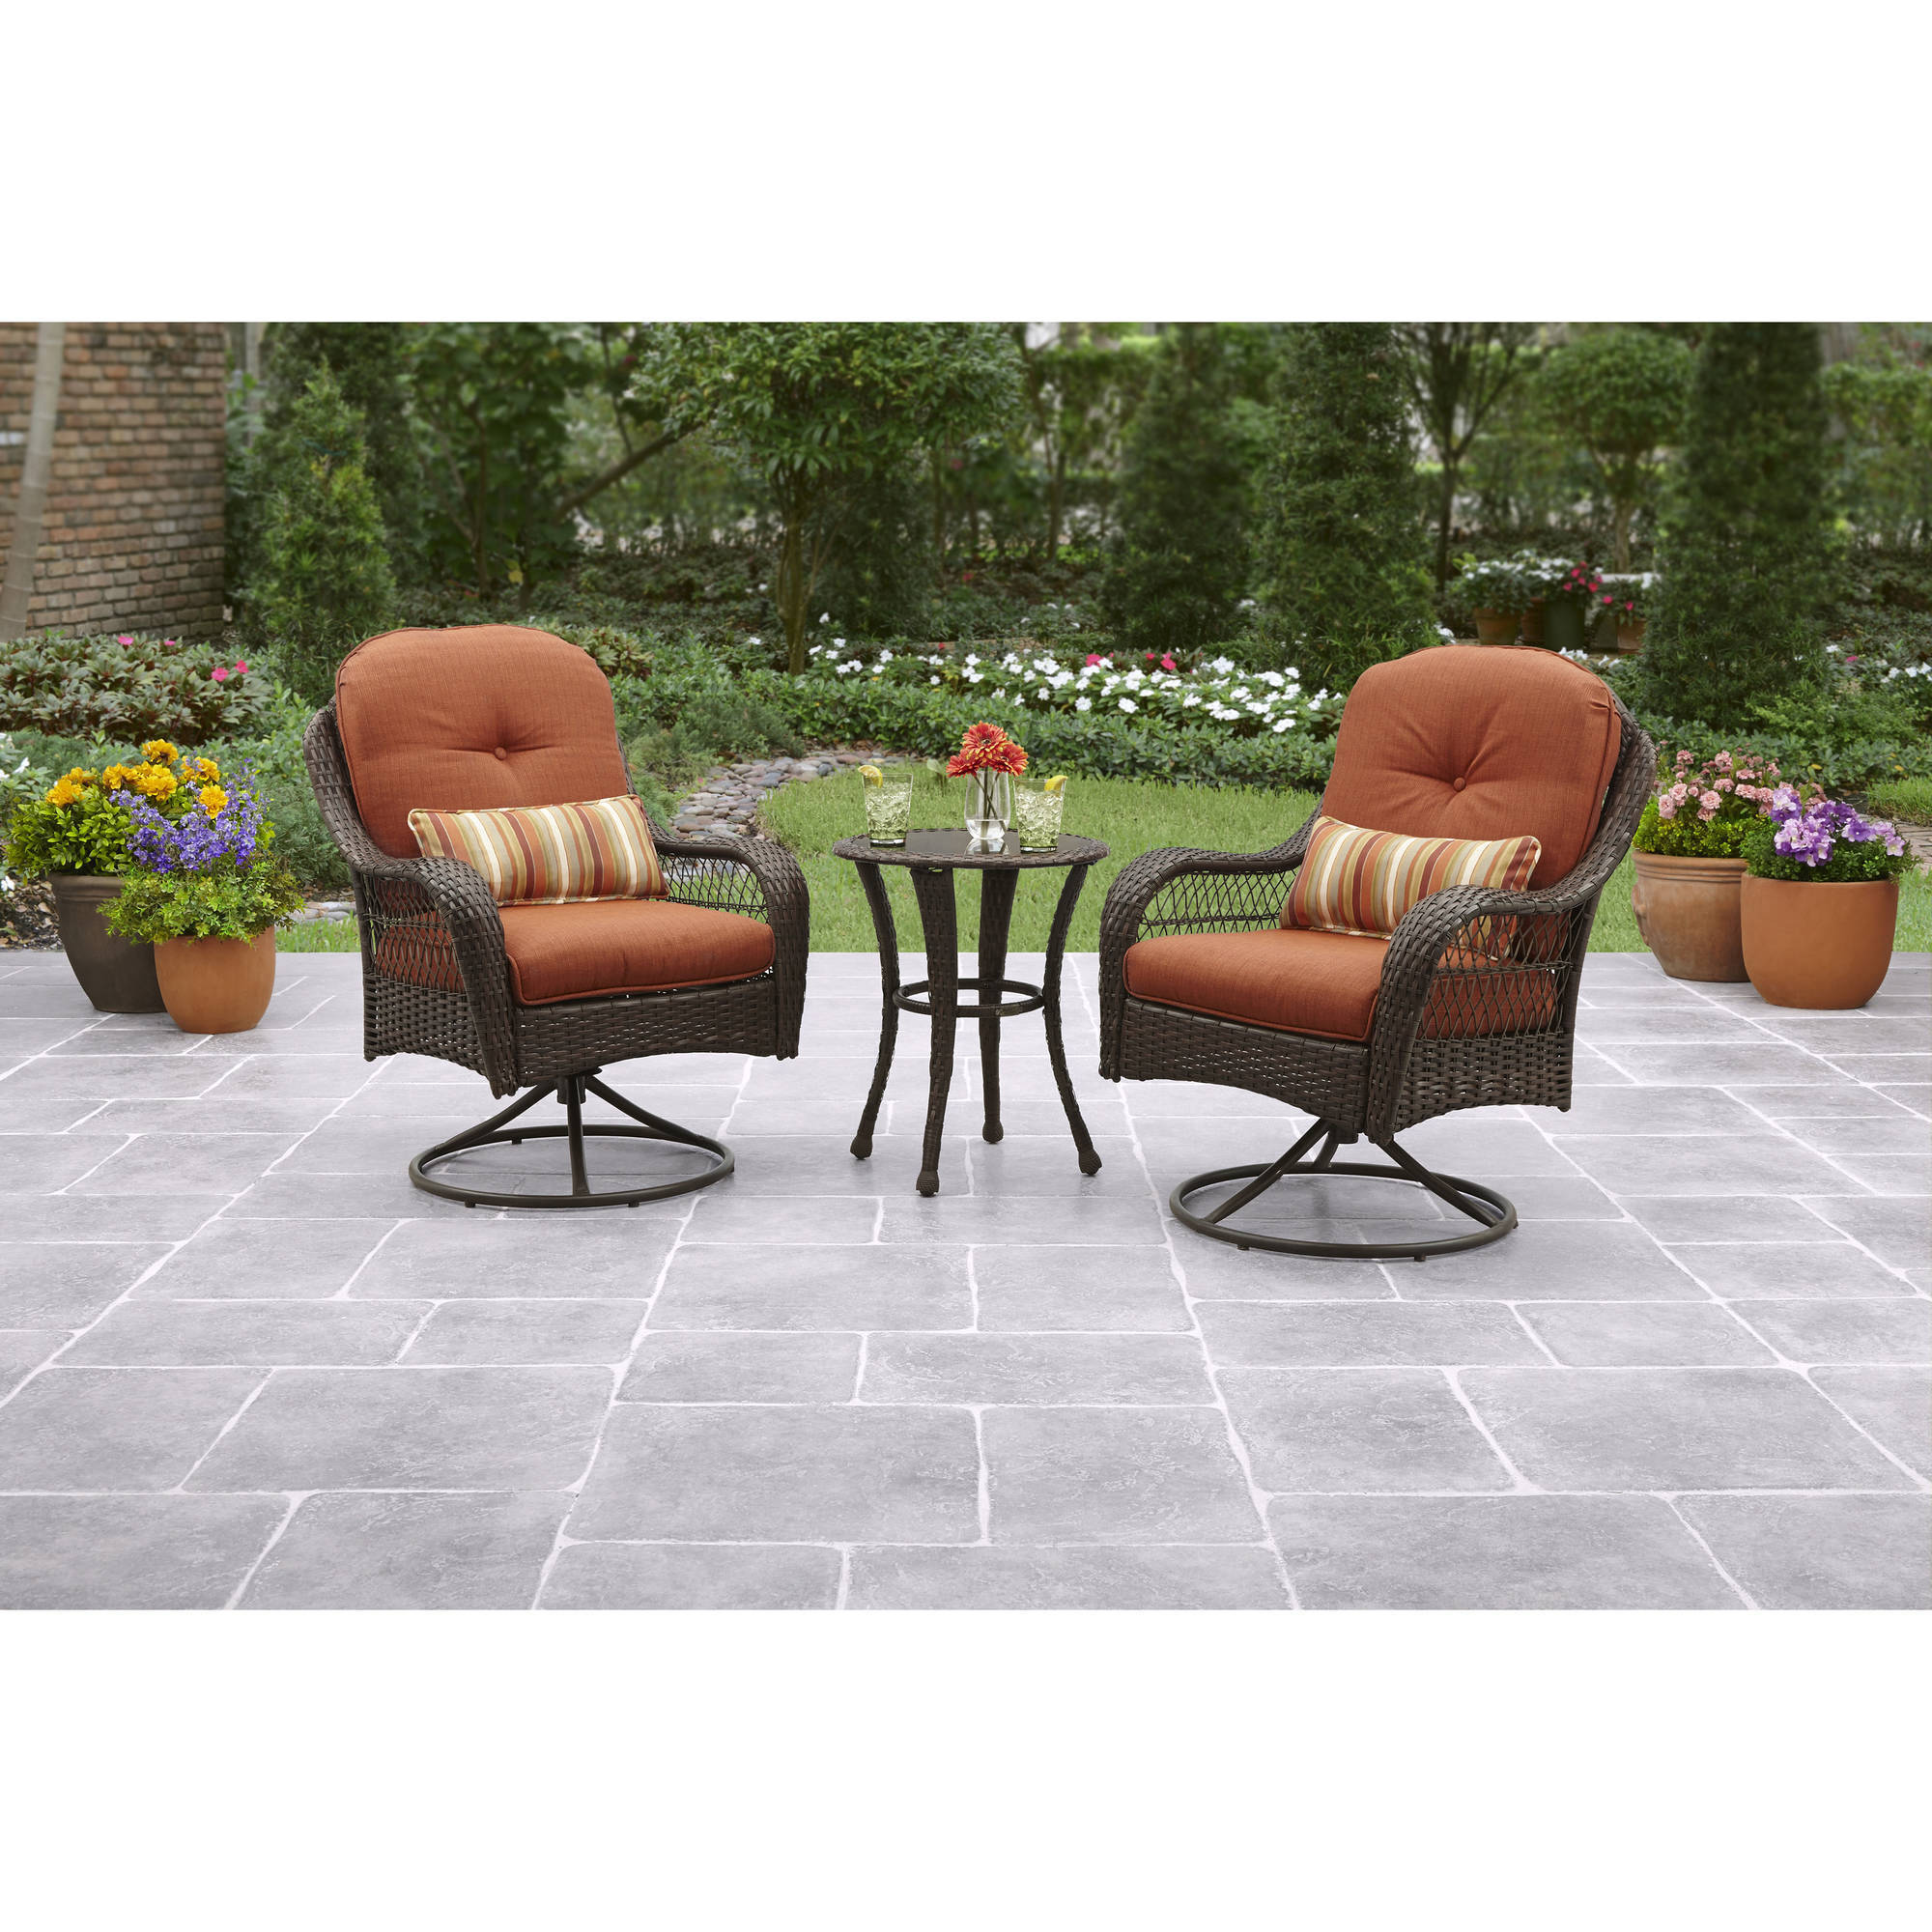 better homes and gardens azalea ridge 3piece outdoor bistro set seats 2 walmartcom - Cheap Patio Sets